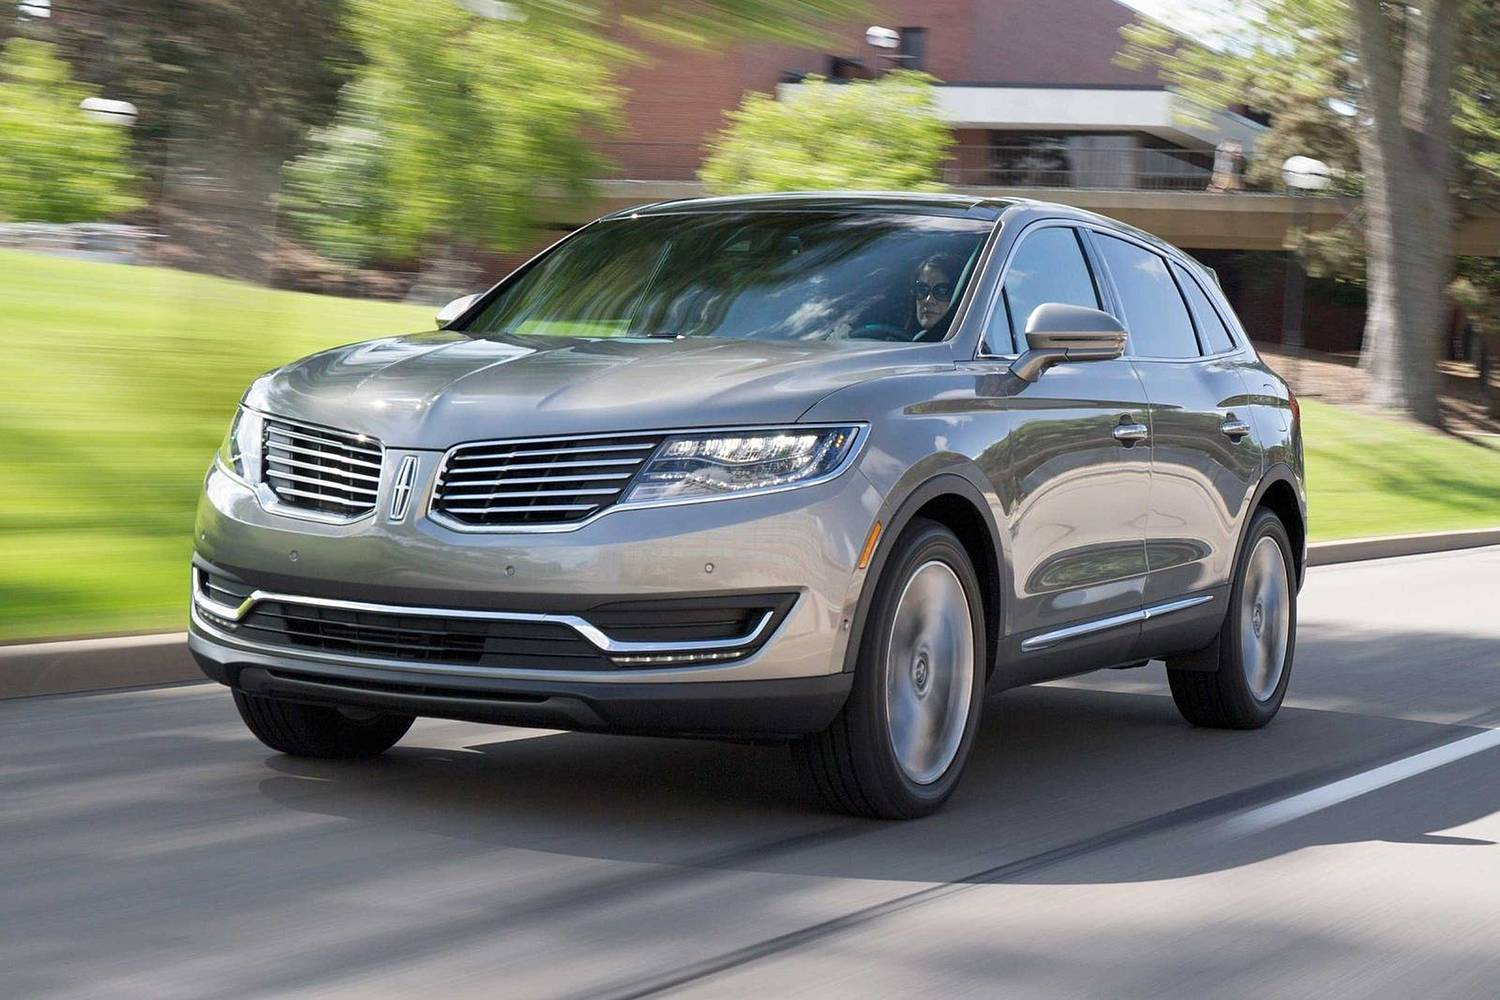 Lincoln MKX Reserve 4dr SUV Exterior Shown (2017 model year shown)